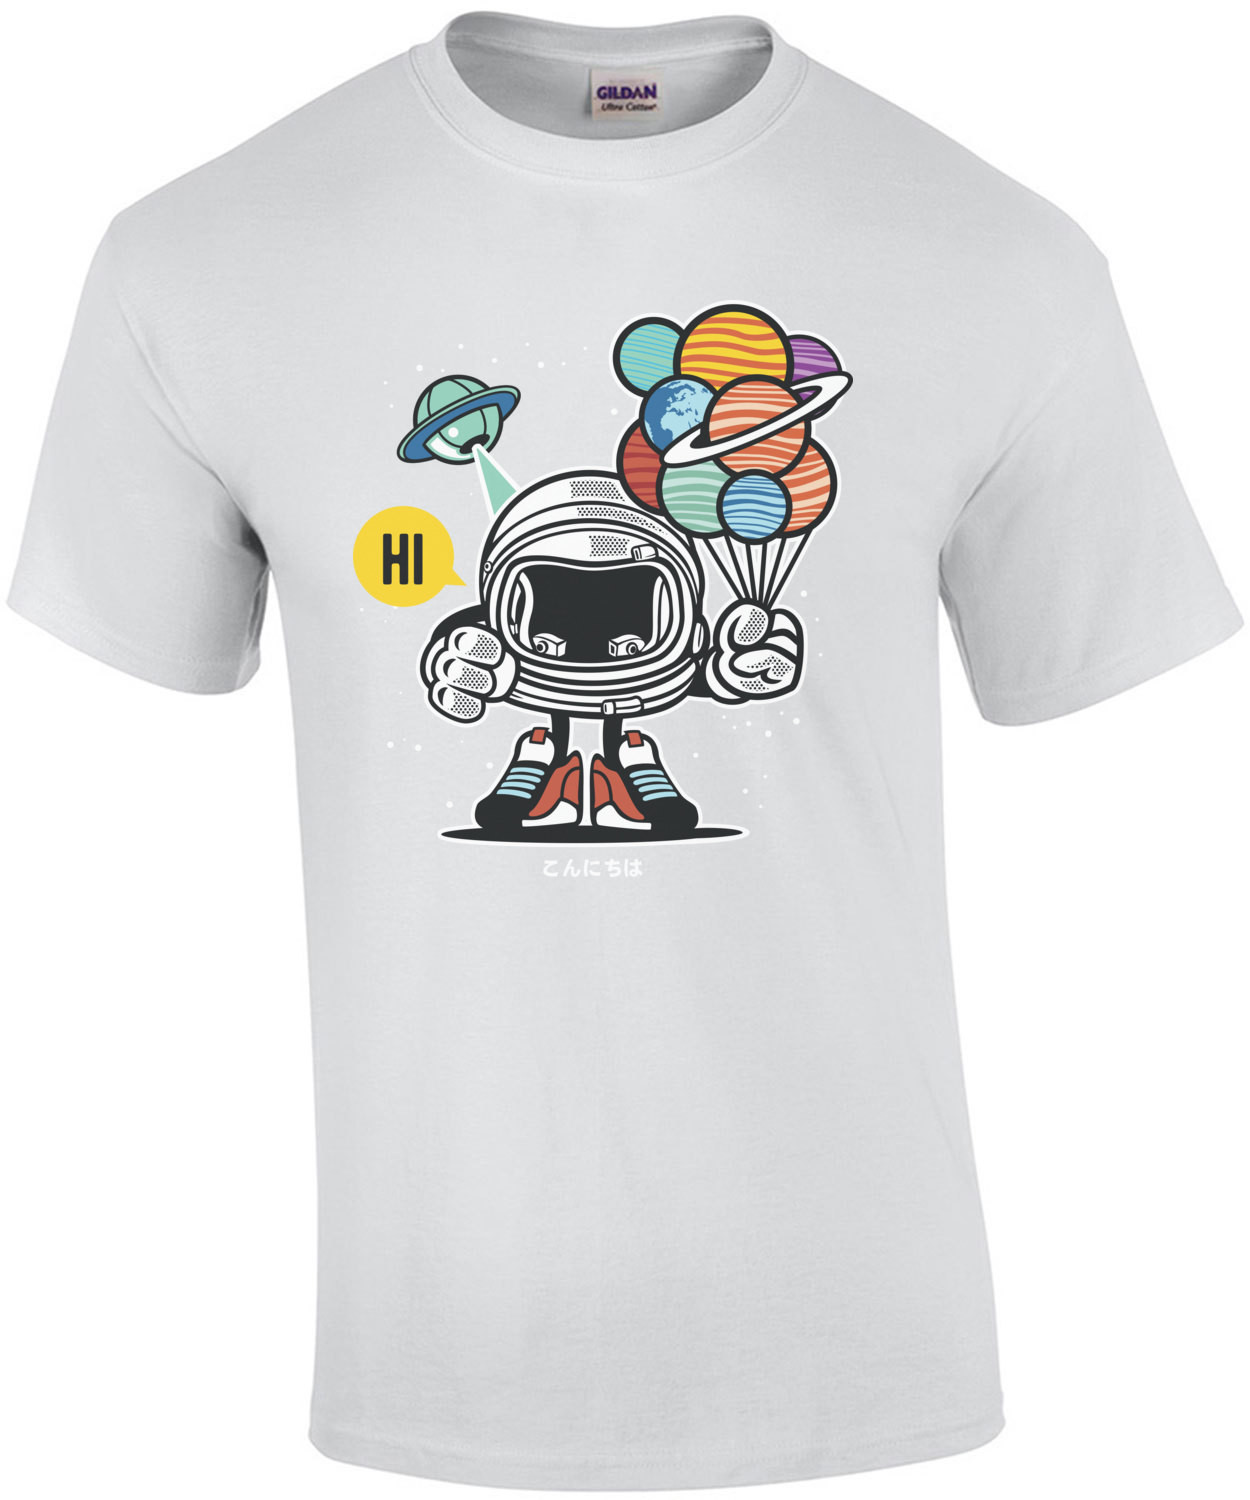 Gift From Outer Space Vintage Martian Astronaut T-Shirt